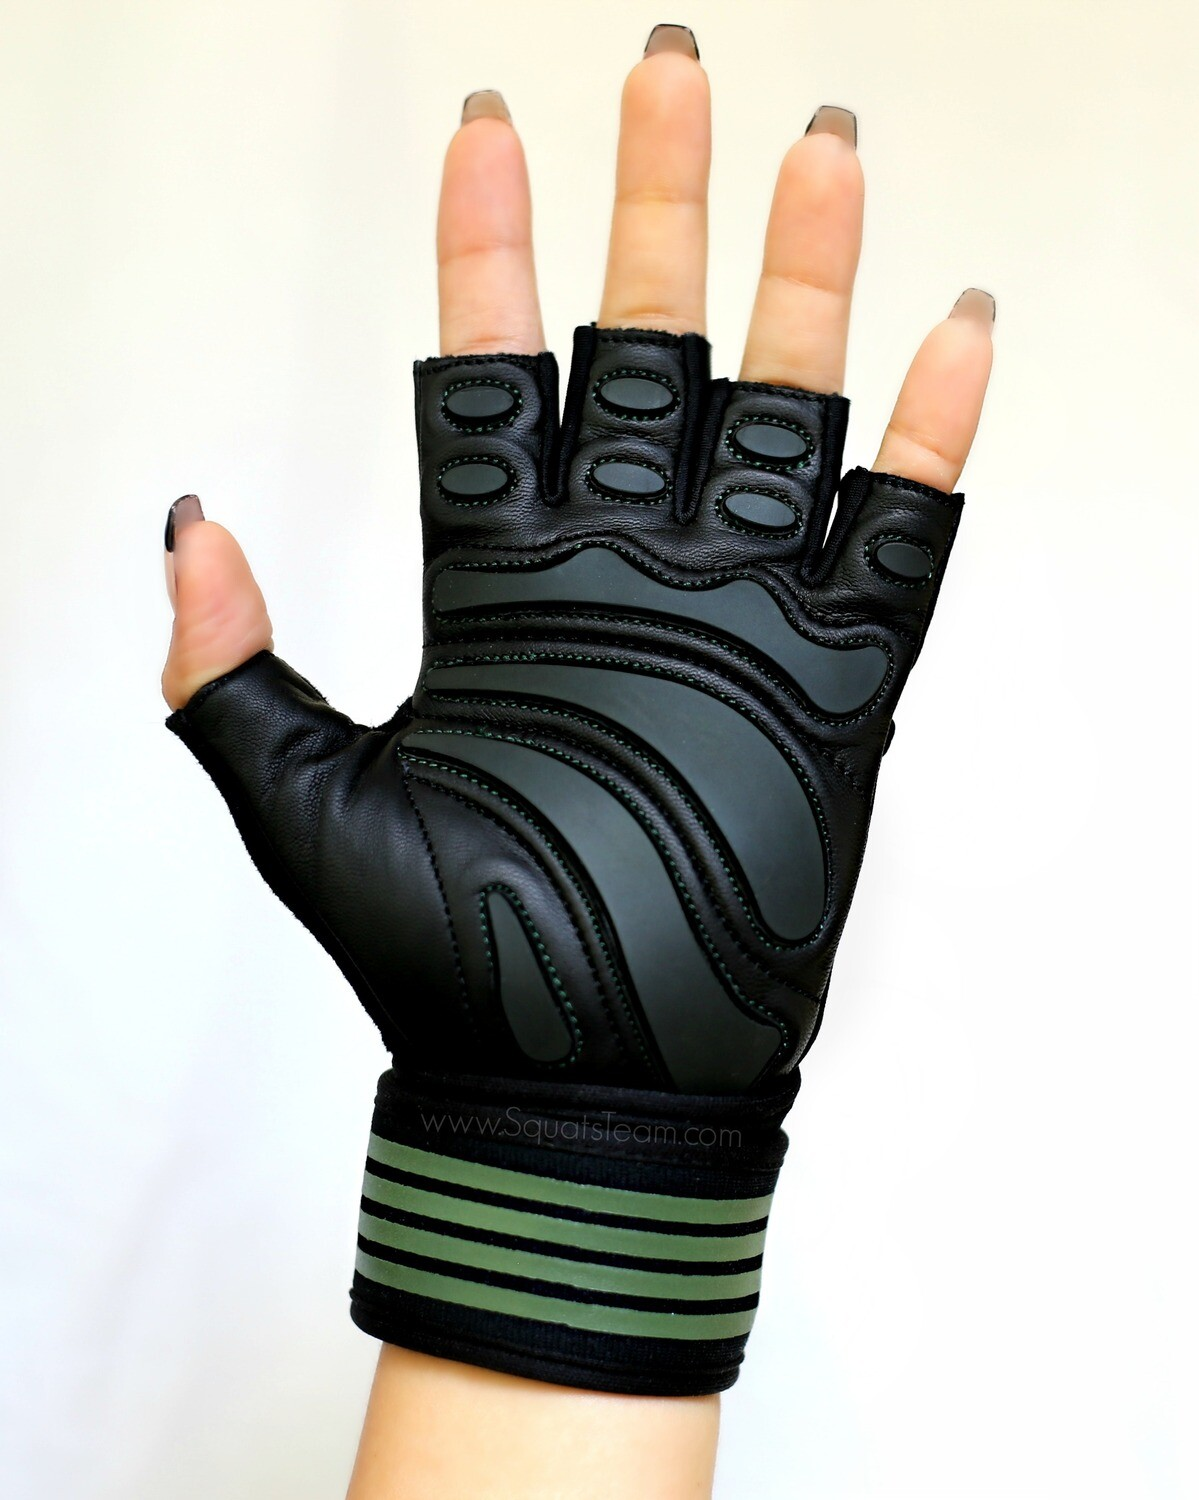 SQUATSTEAM Fitness Gloves (Olive)